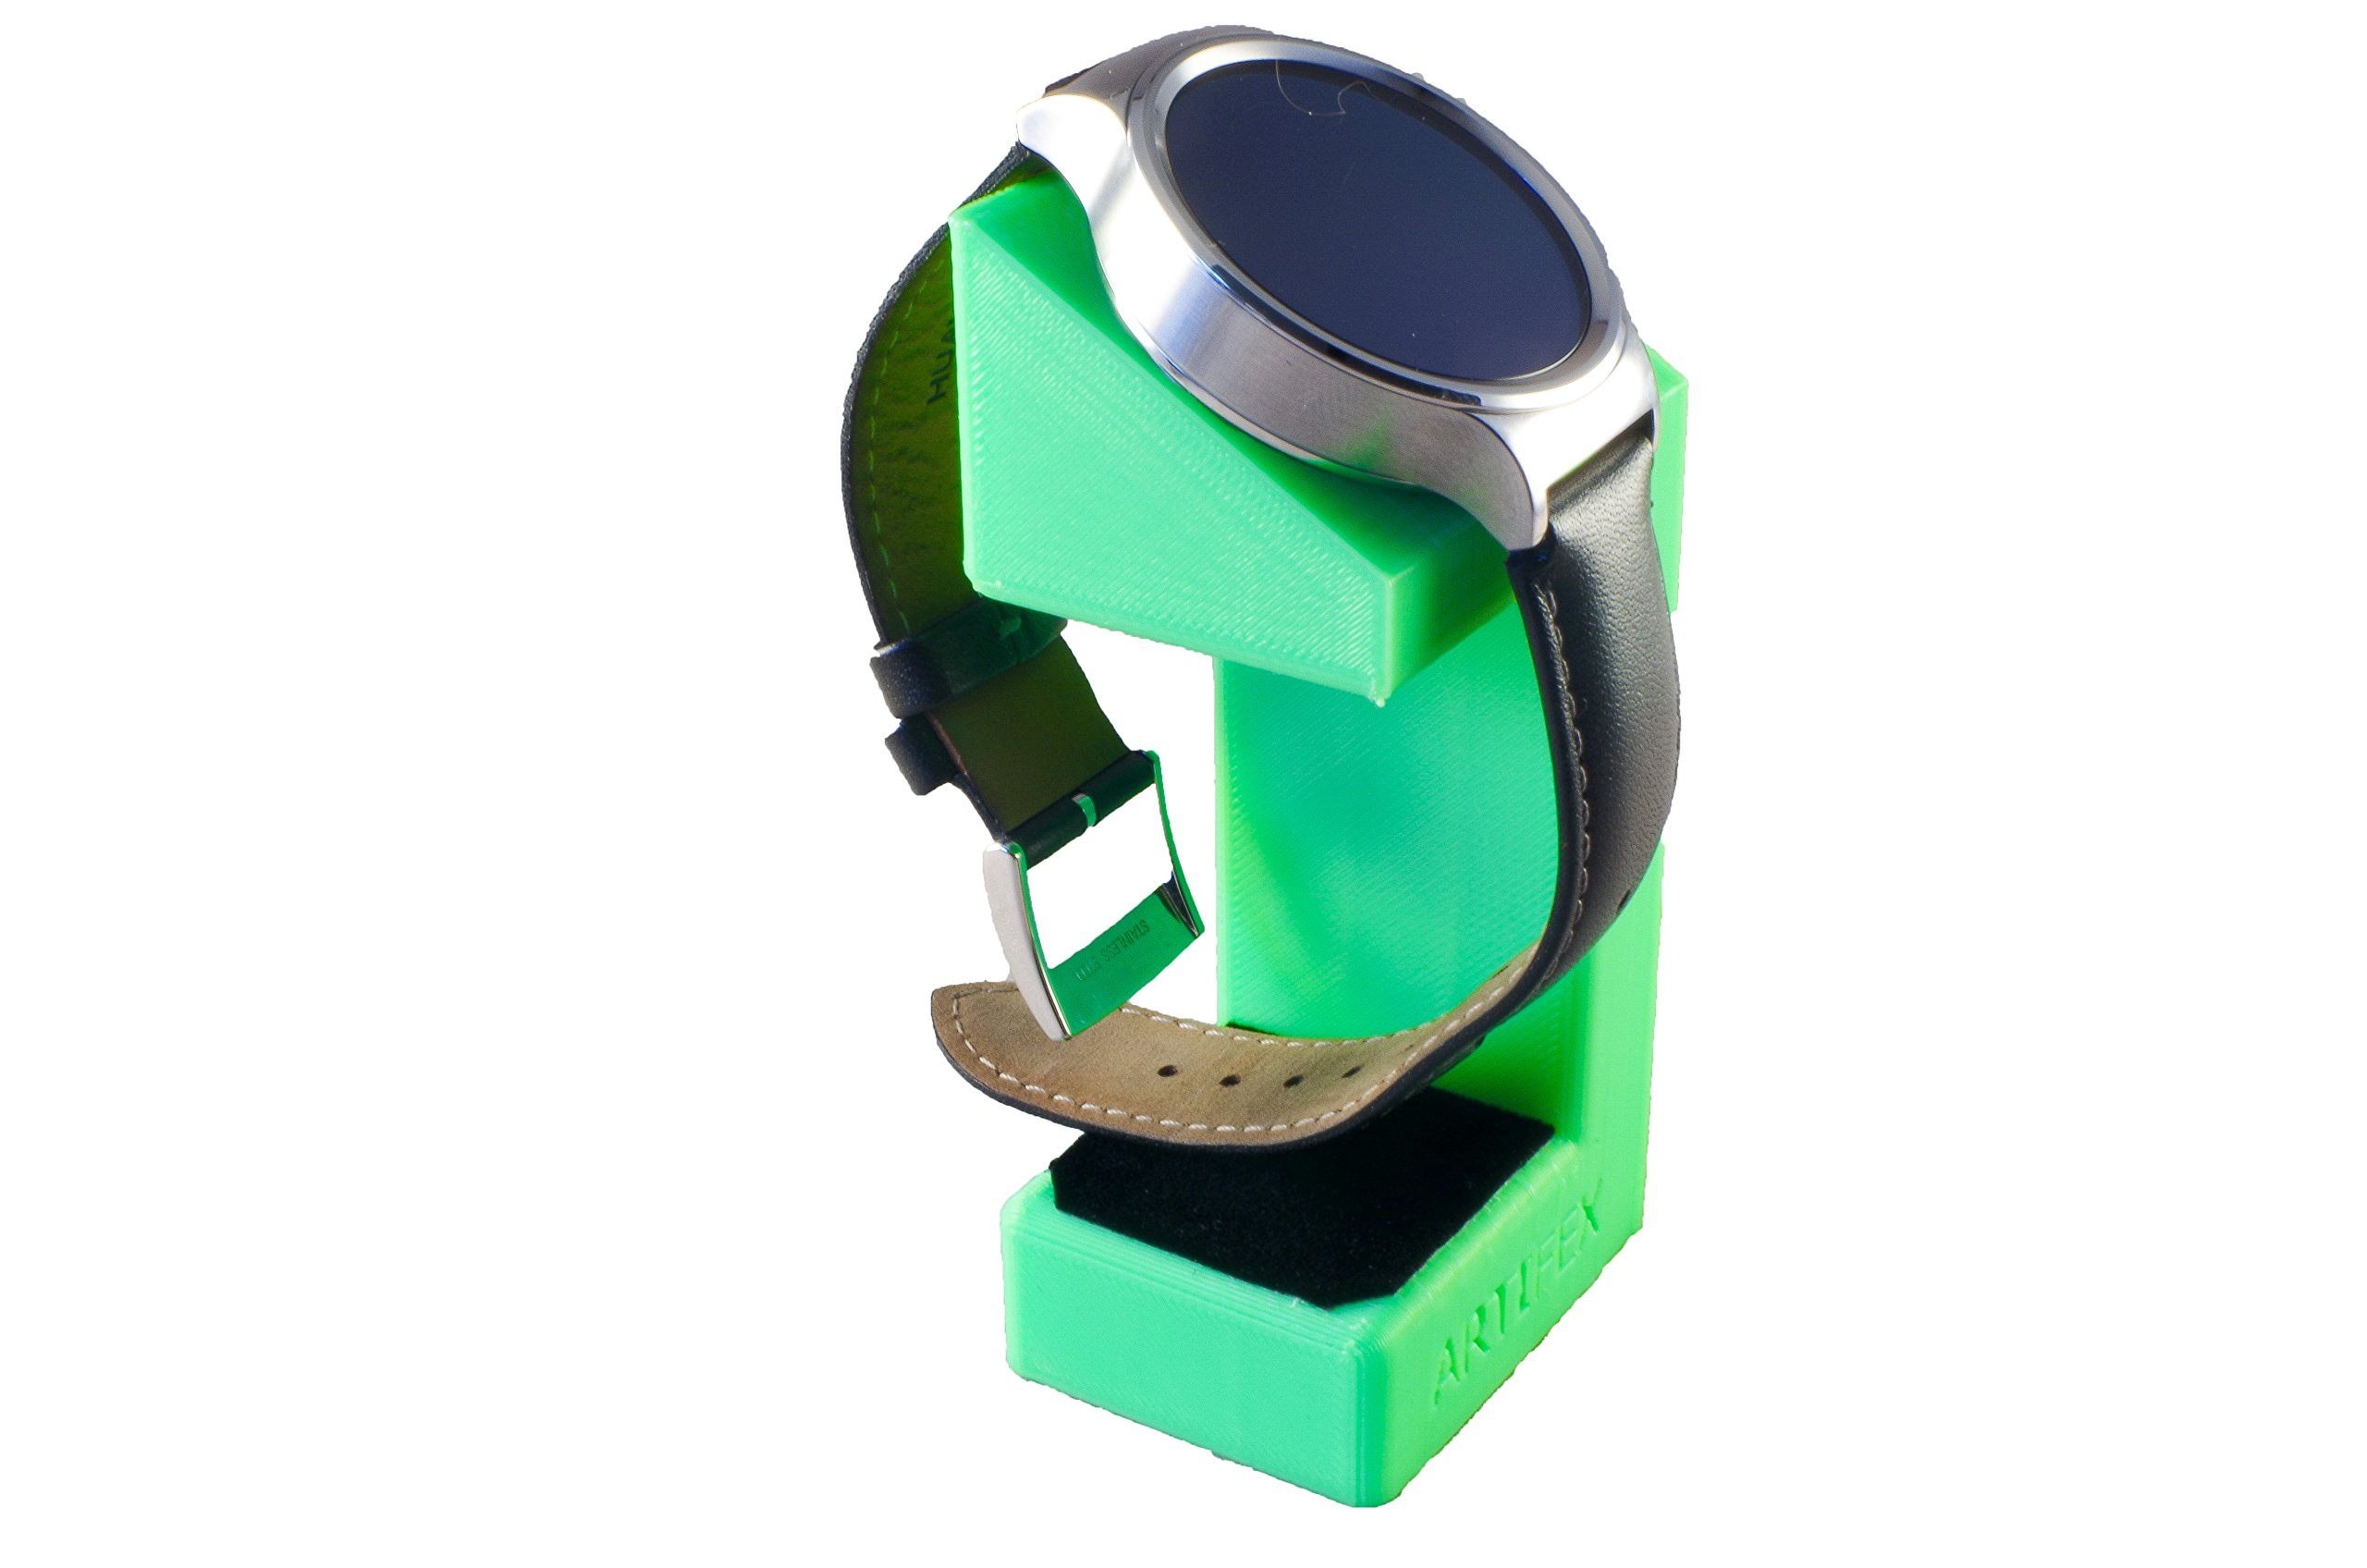 Huawei Watch Stand, Artifex Charging Dock Stand for Huawei Watch, New 3d Printed Technology, Smartwatch Cradle (Android Green)